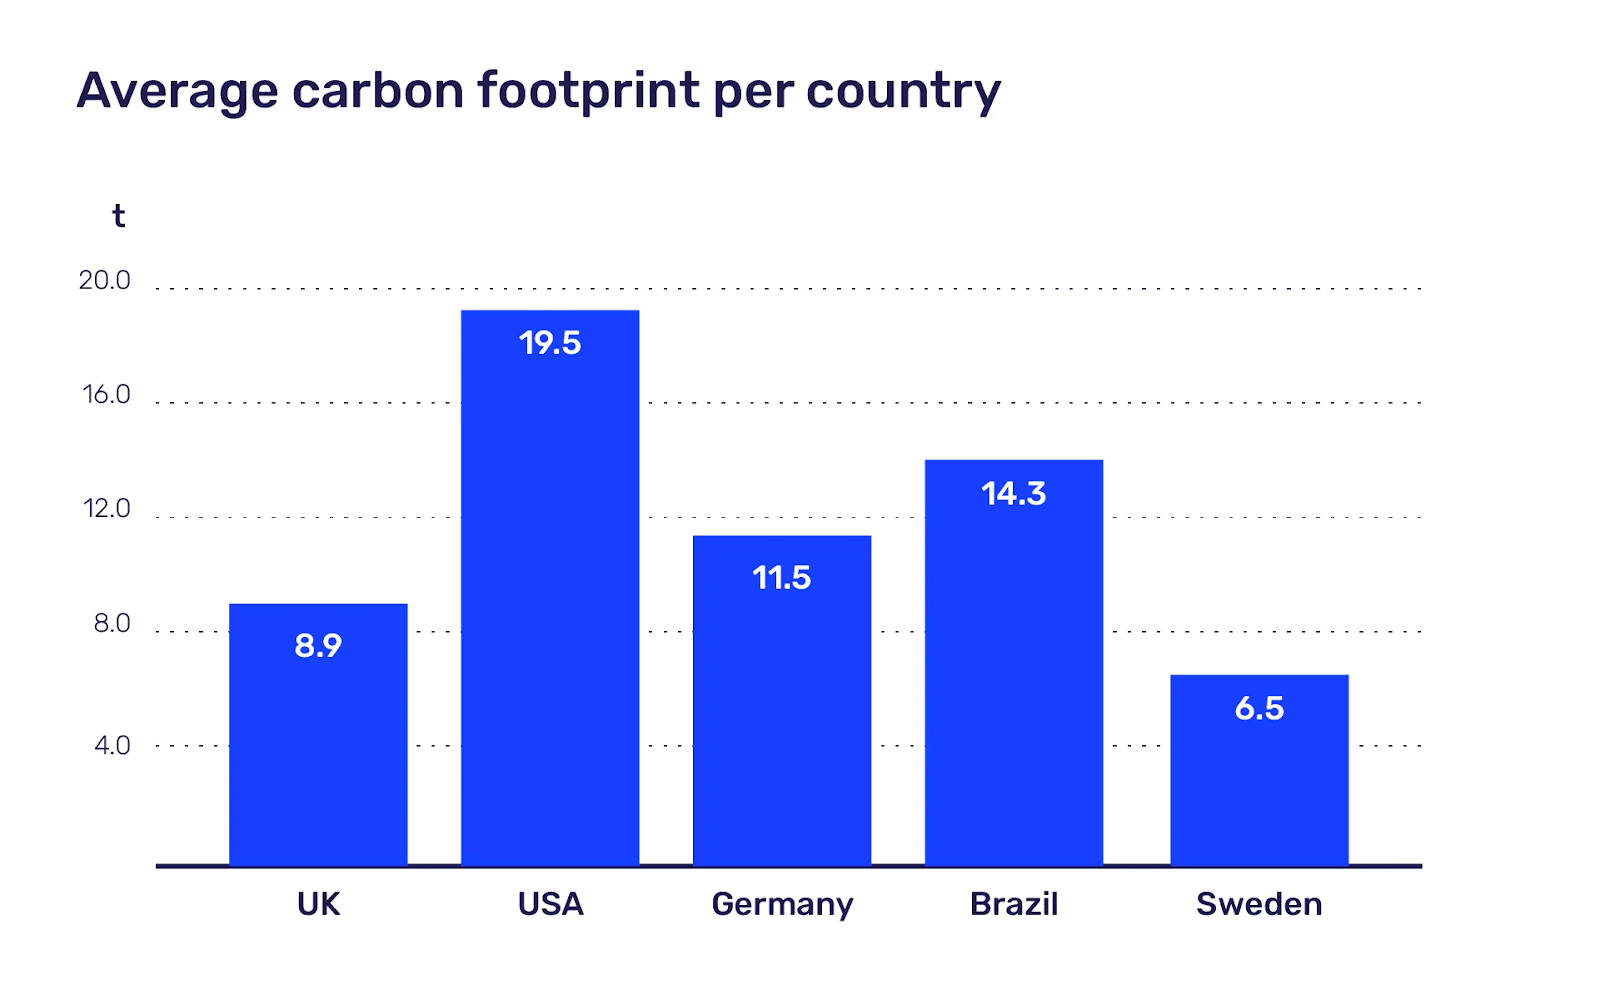 Average carbon footprint per country